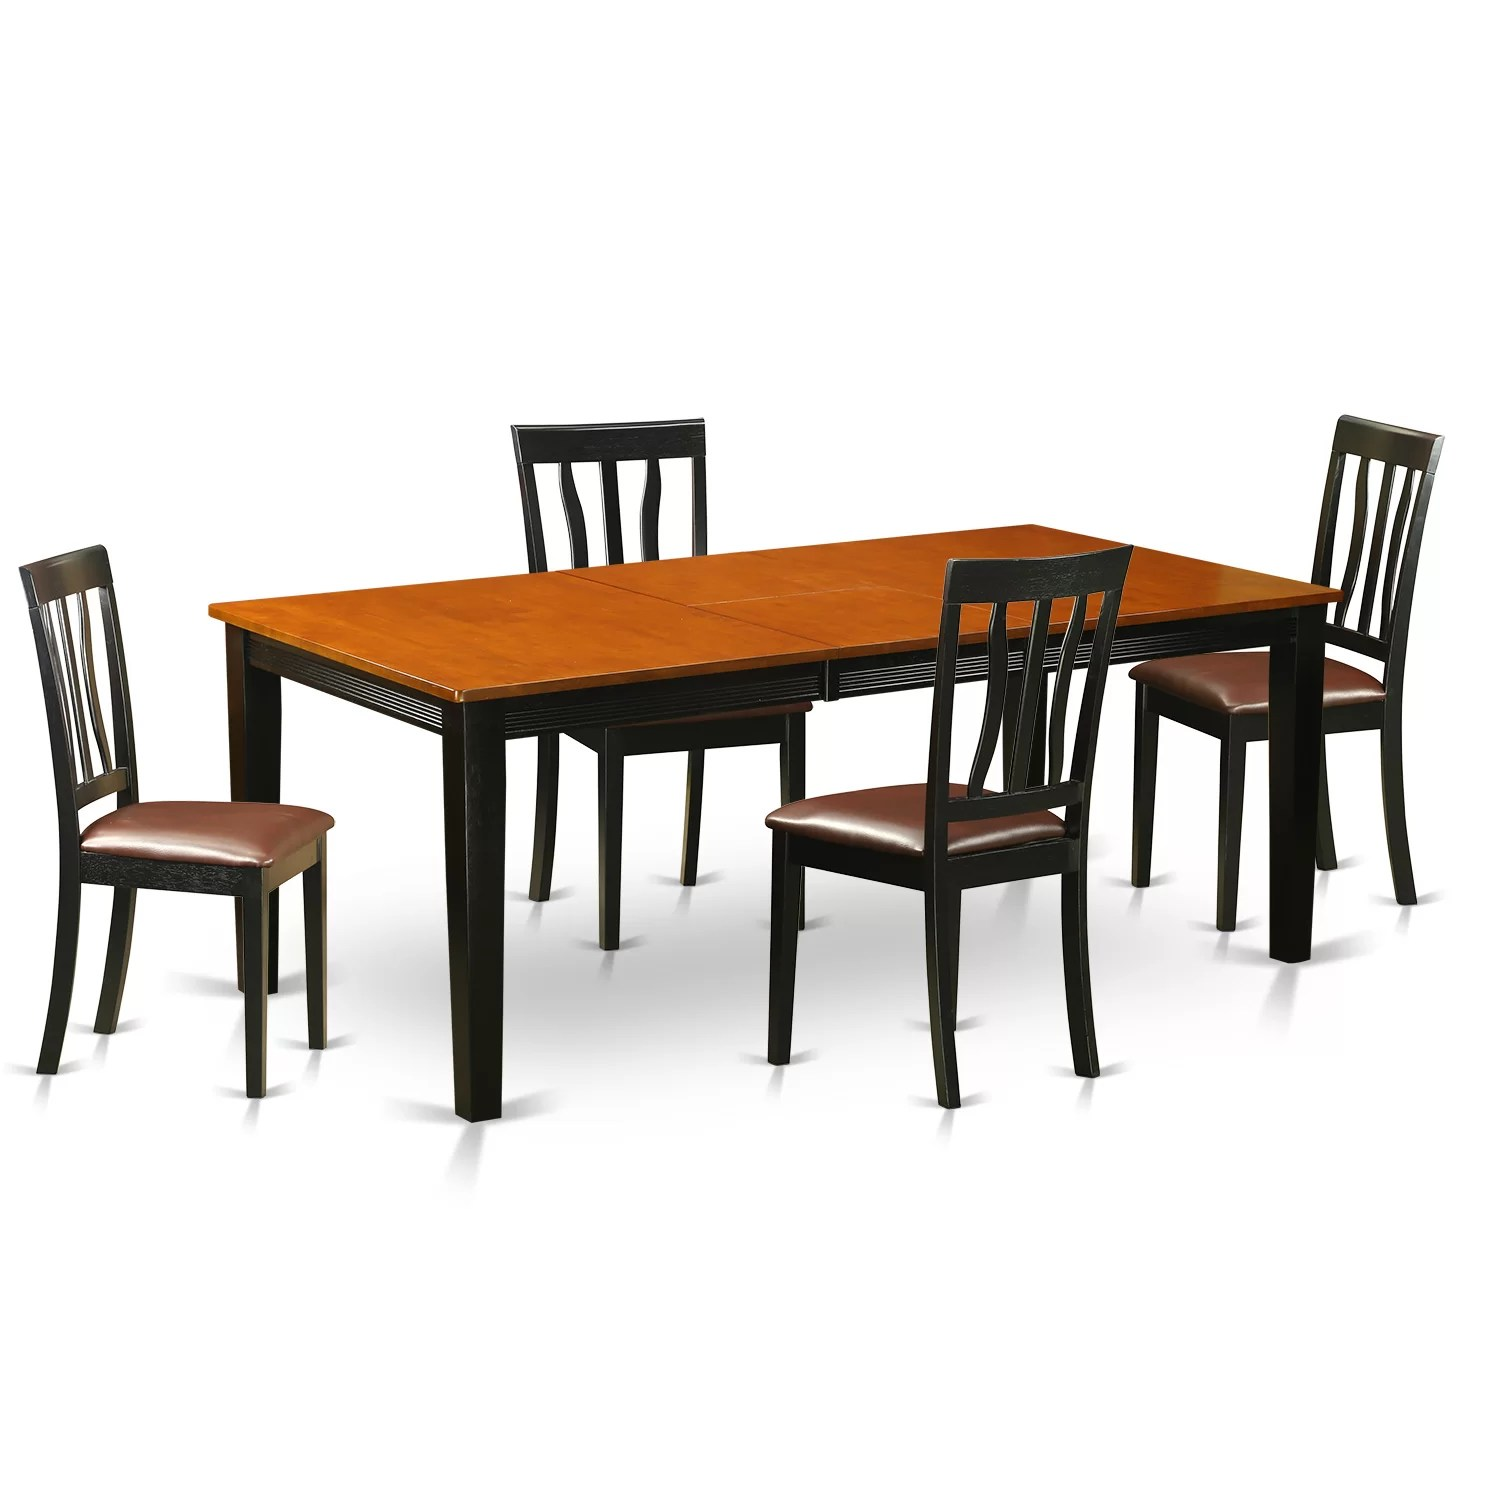 Unfinished Dining Room Chairs Quincy 5 Piece Dining Set Wayfair